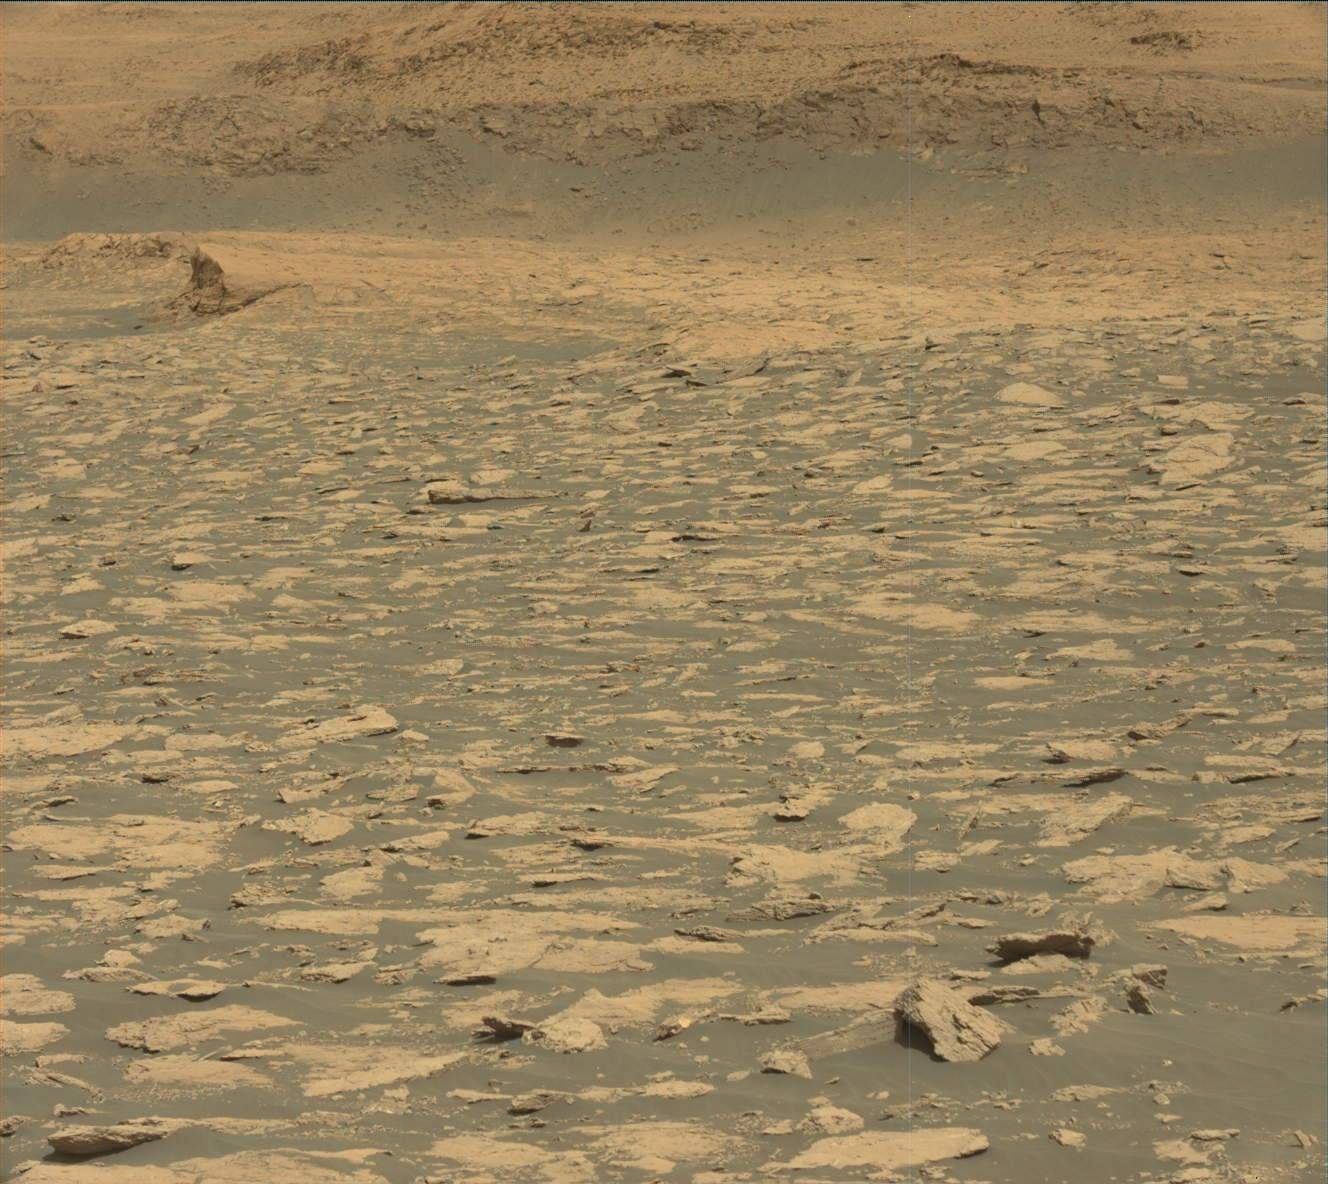 Nasa's Mars rover Curiosity acquired this image using its Mast Camera (Mastcam) on Sol 3025